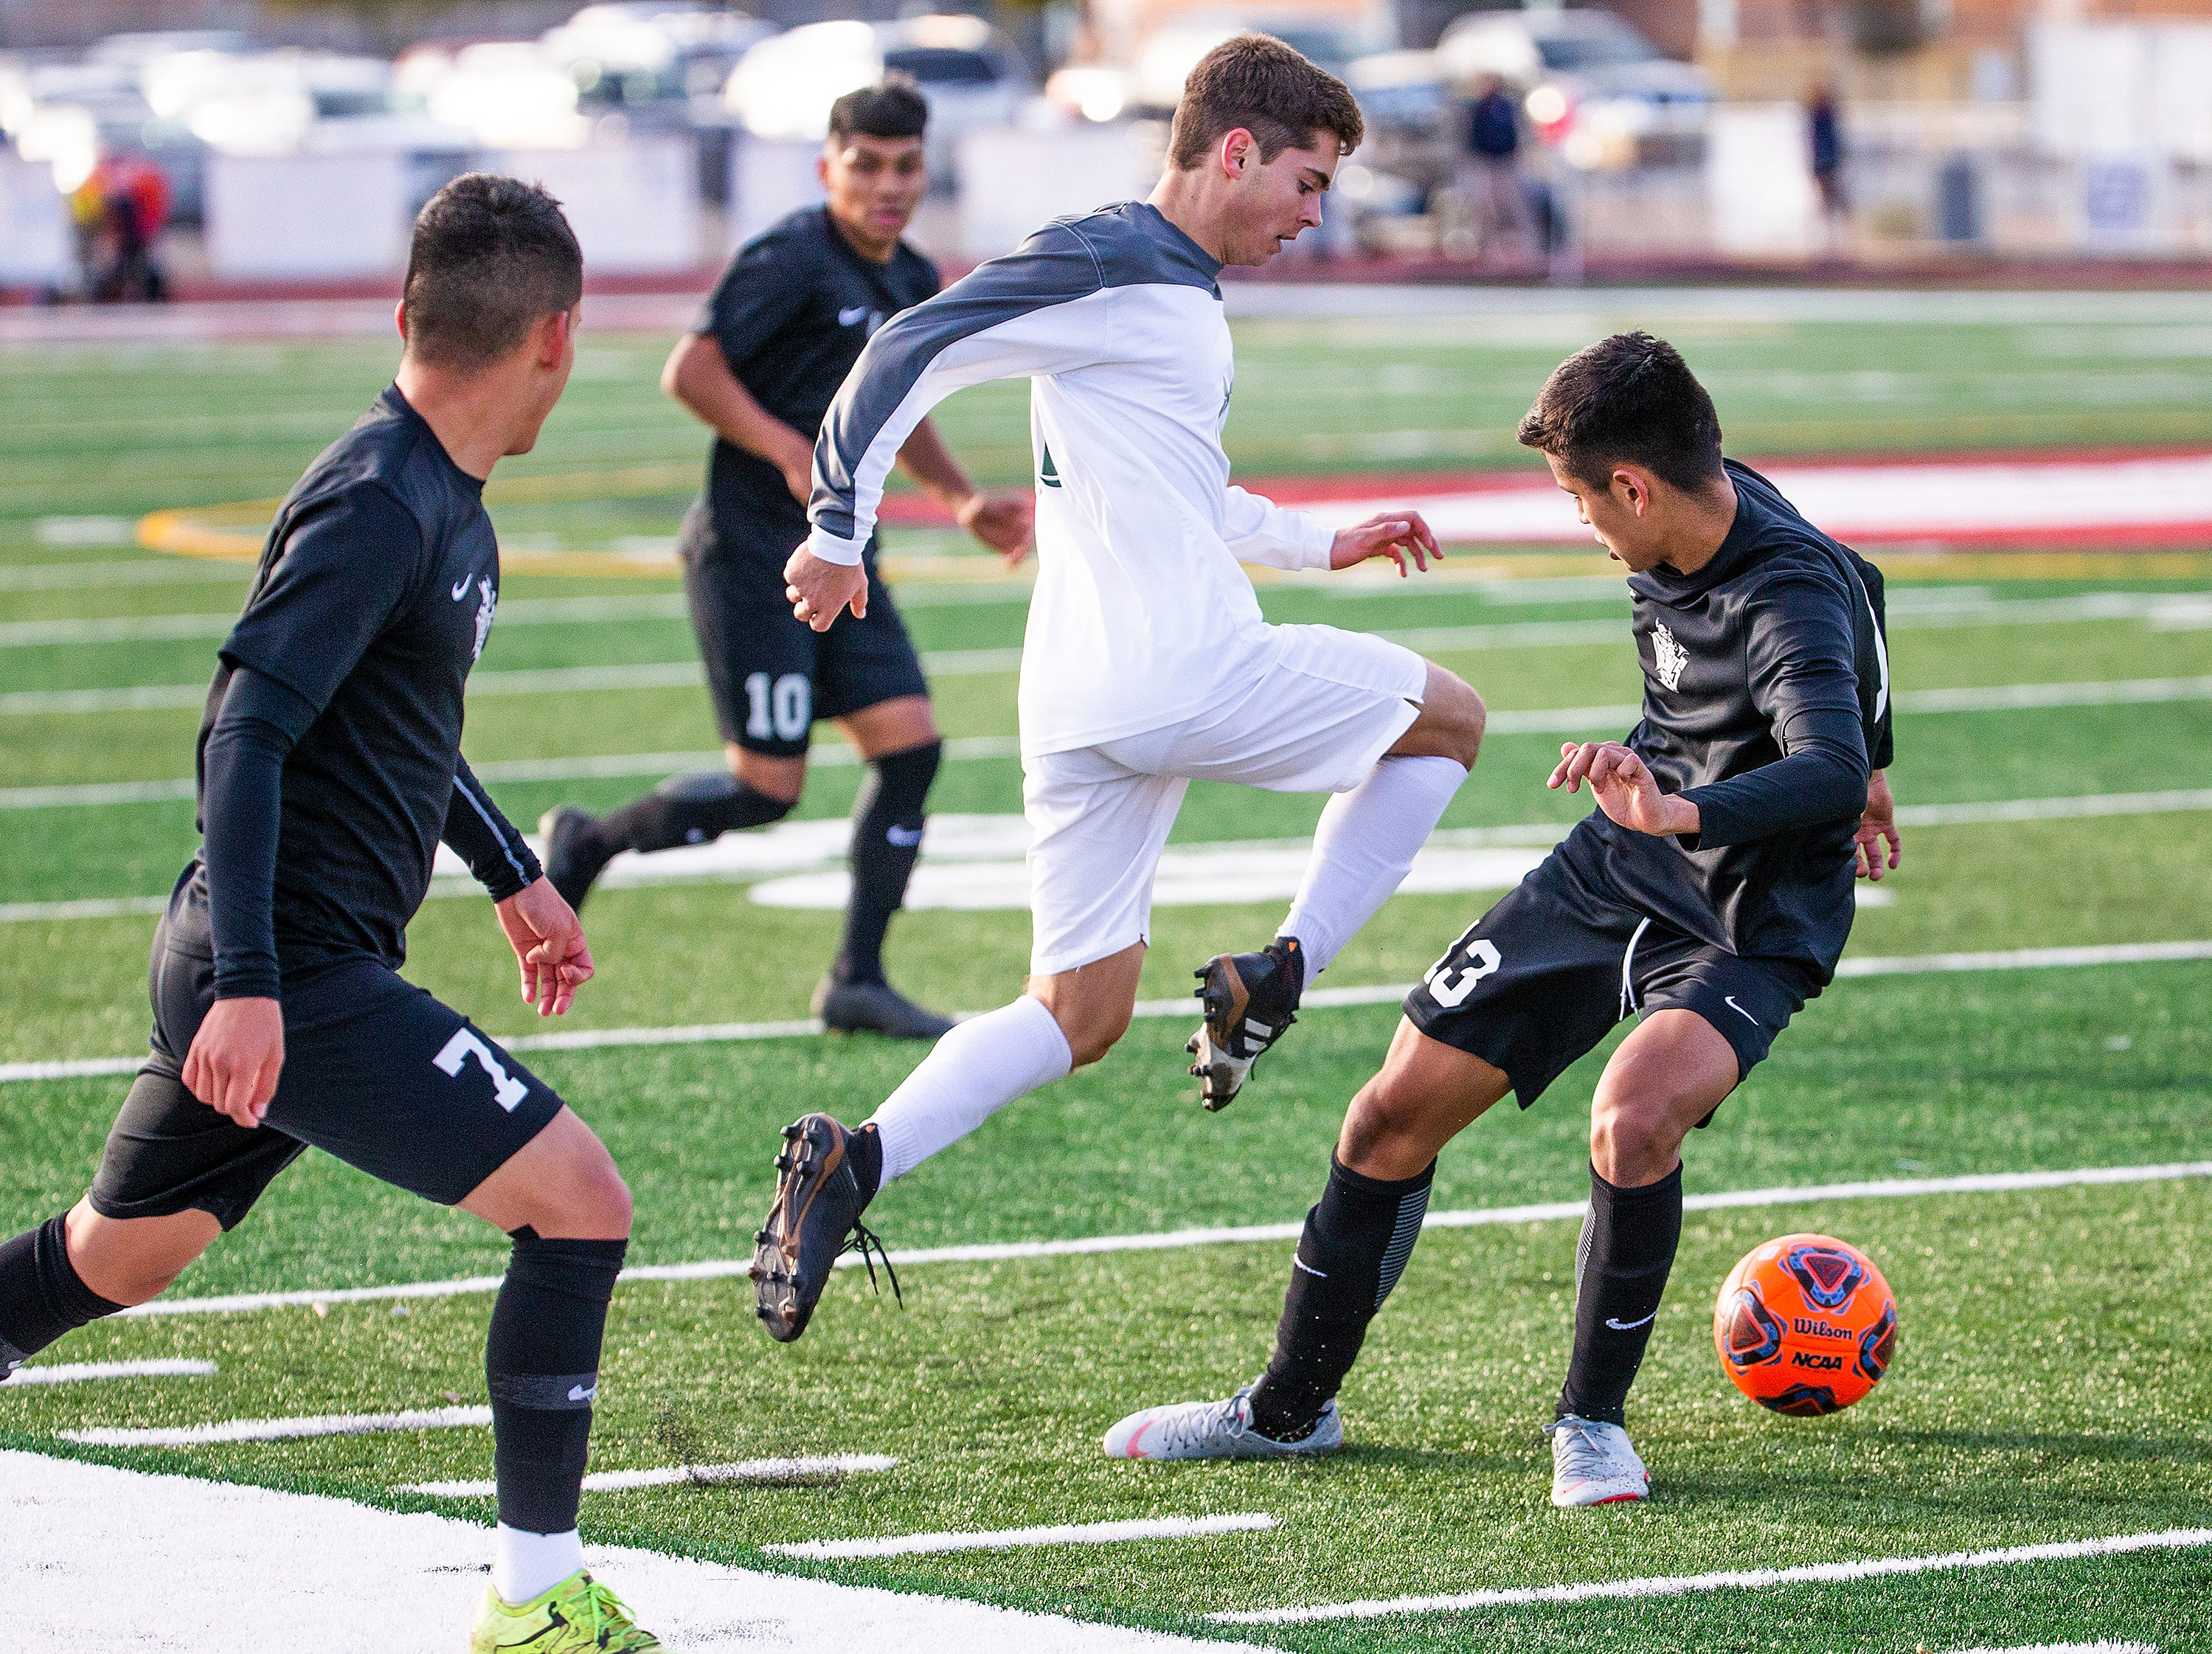 Tucson Sunnyside High School players Adrian Virgen, left, and Carlos Frias, right, converge on Campo Verde High School player Shawn McGarvin         during the 5A State Soccer Championship at Coronado High School in Scottsdale, Wednesday, February 20, 2019.